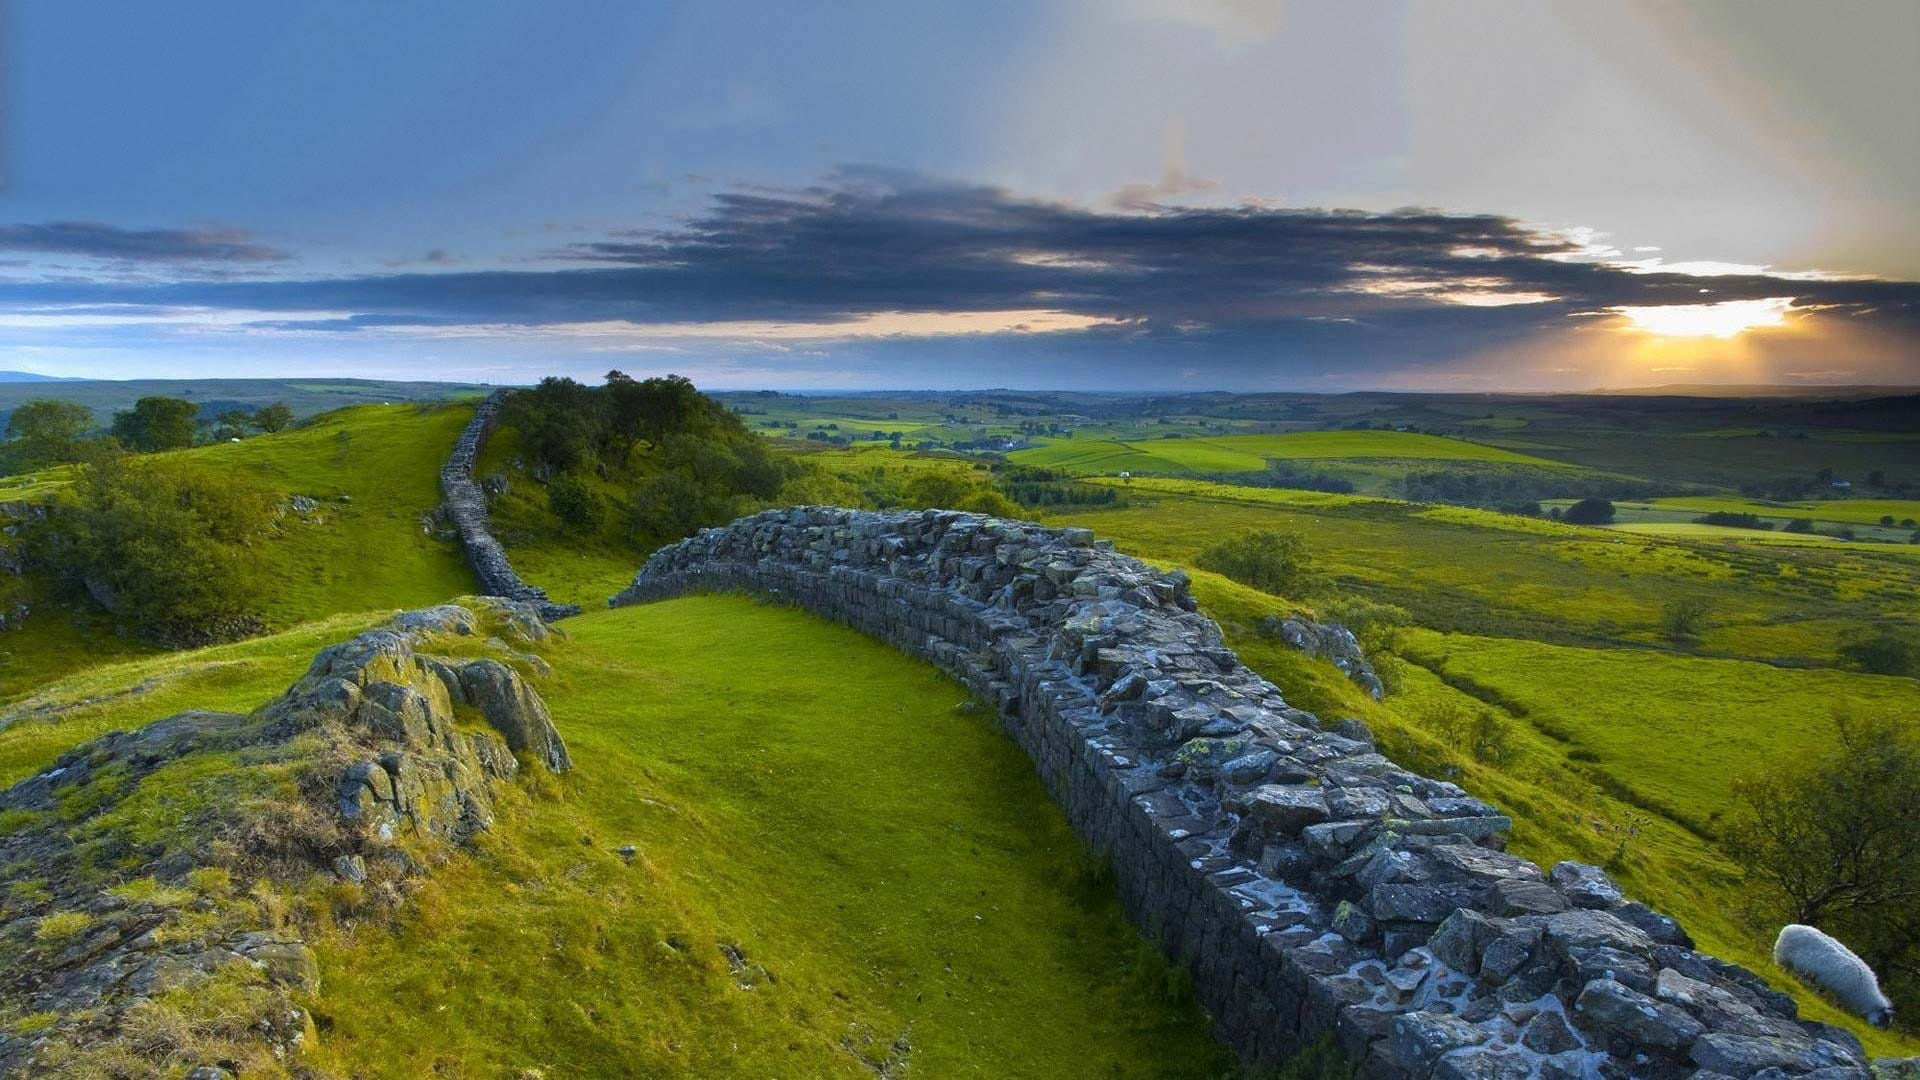 Hadrian's Wall in Northumberland. You can take part in this year's Hadrian's Wall Challenge by registering your interest.